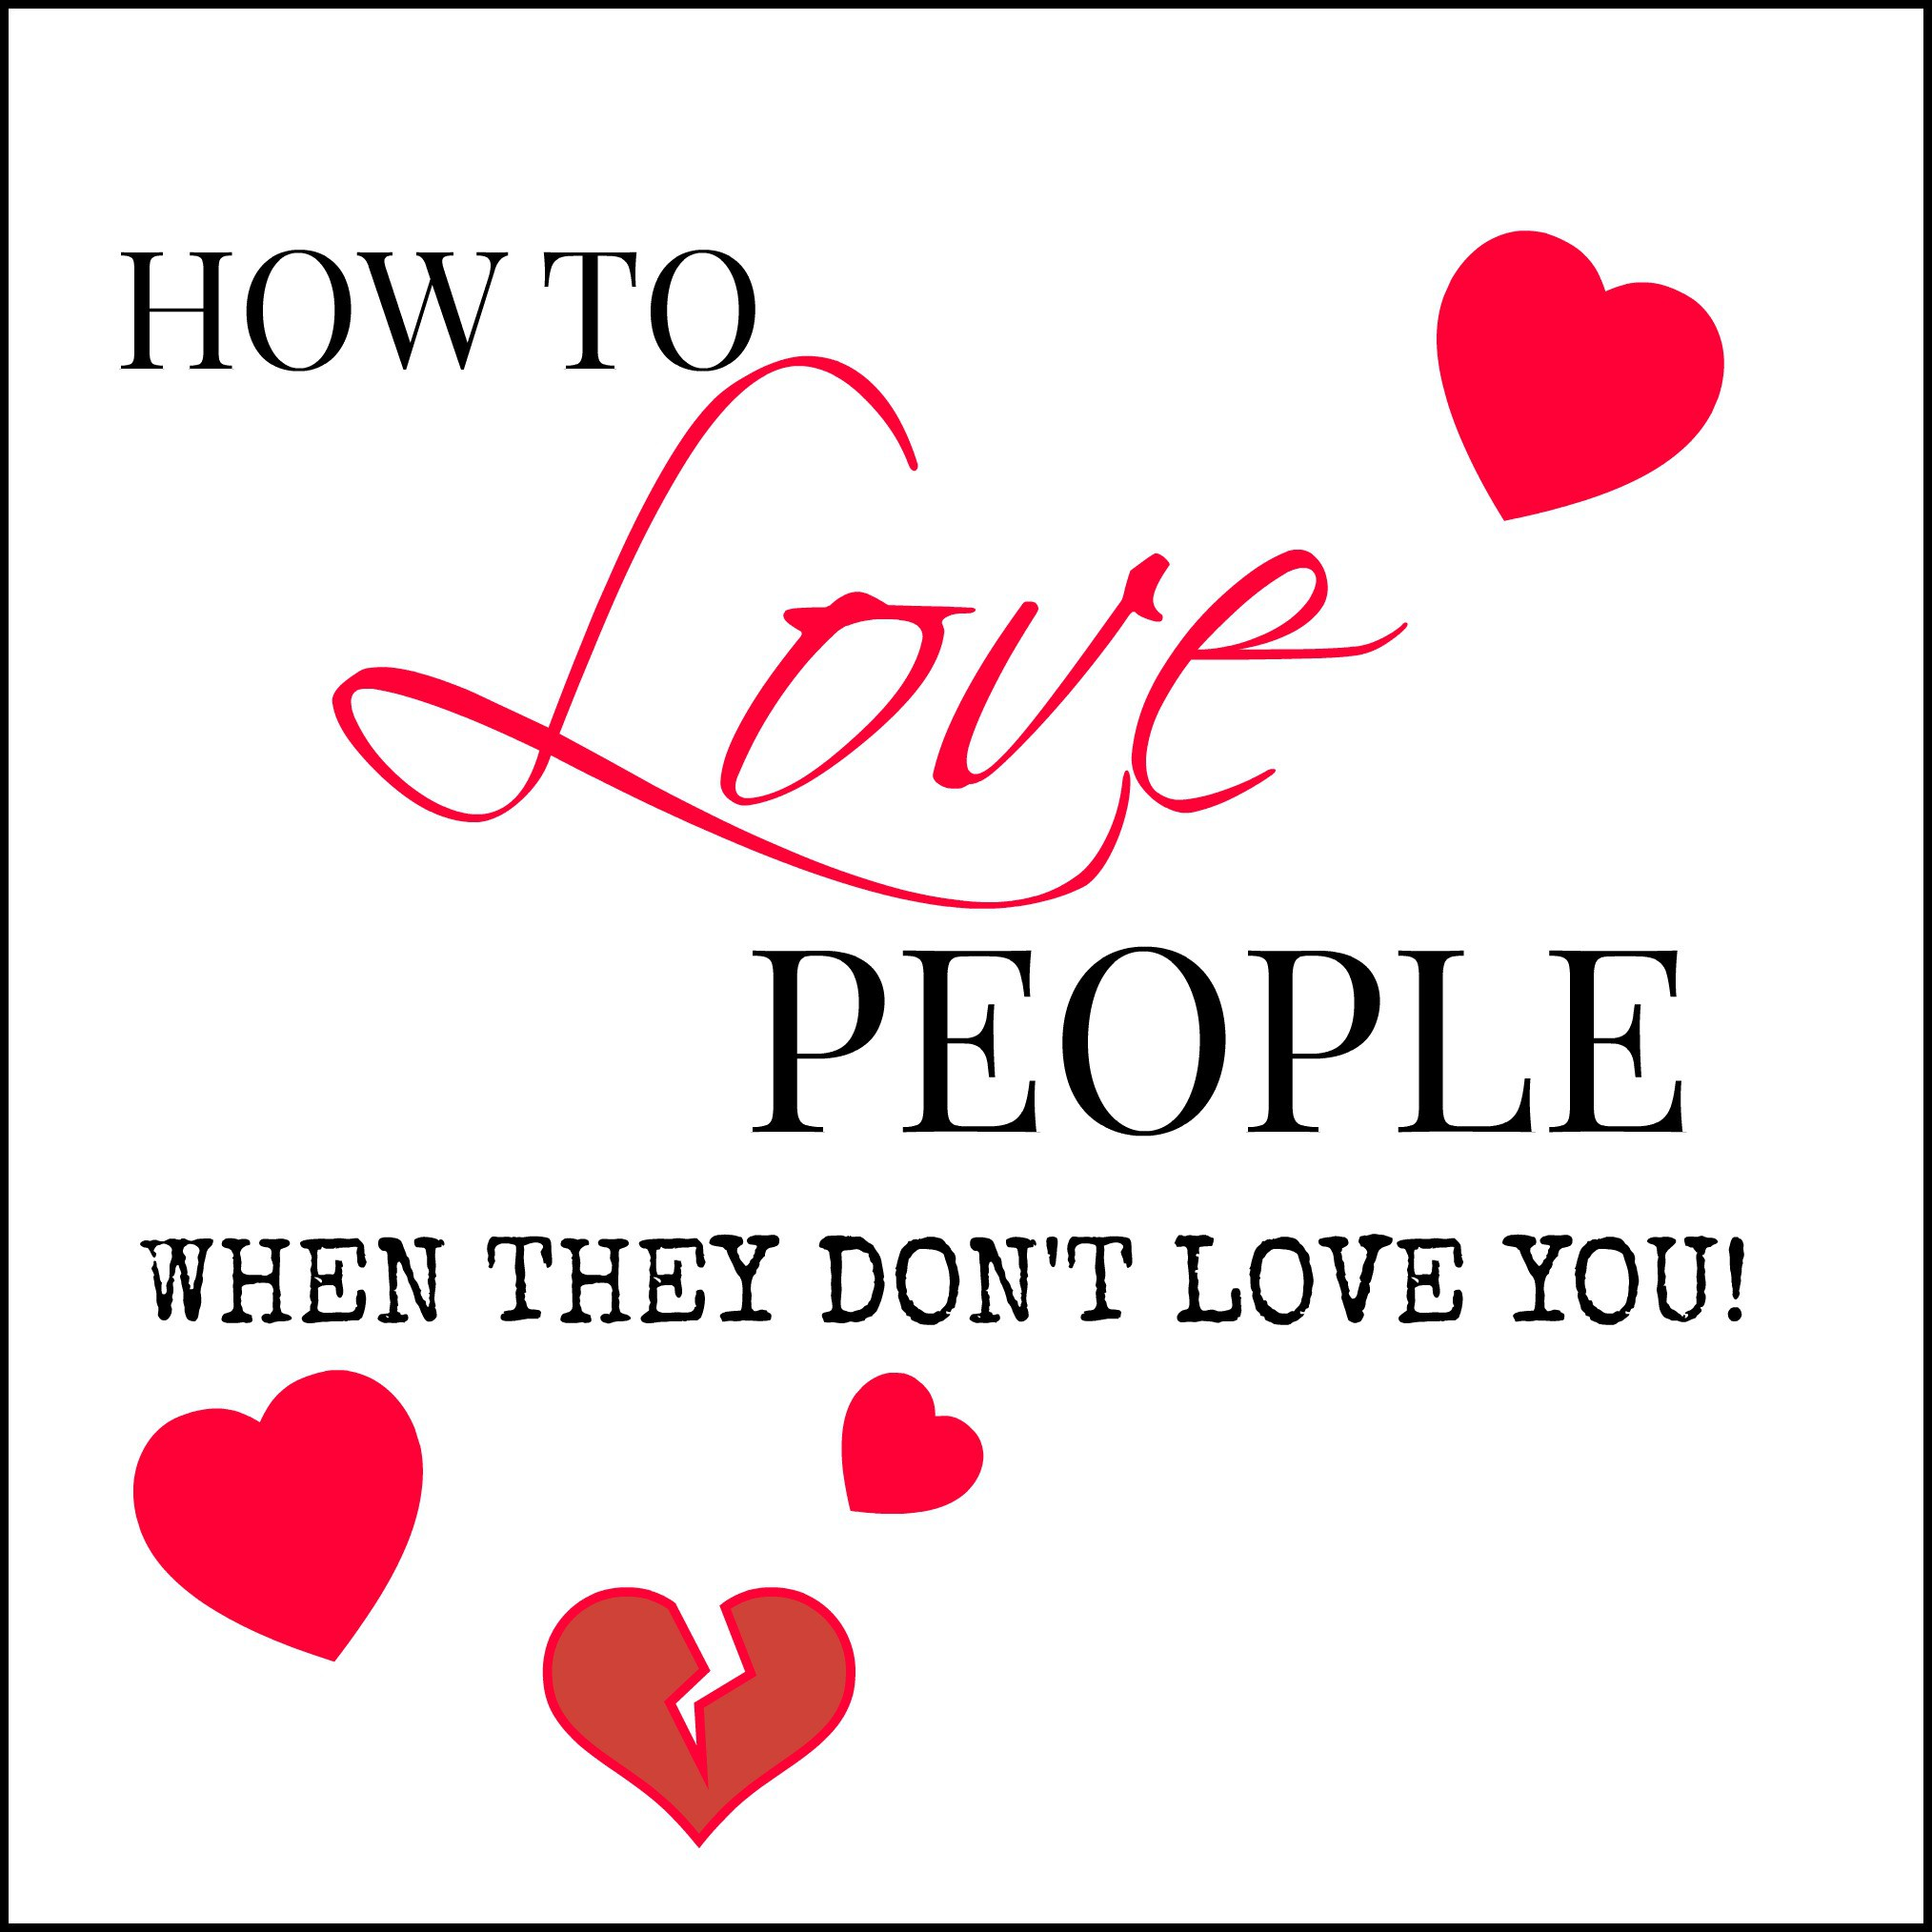 how-to-love-people-when-they-dont-love-you-ss-9-28-14